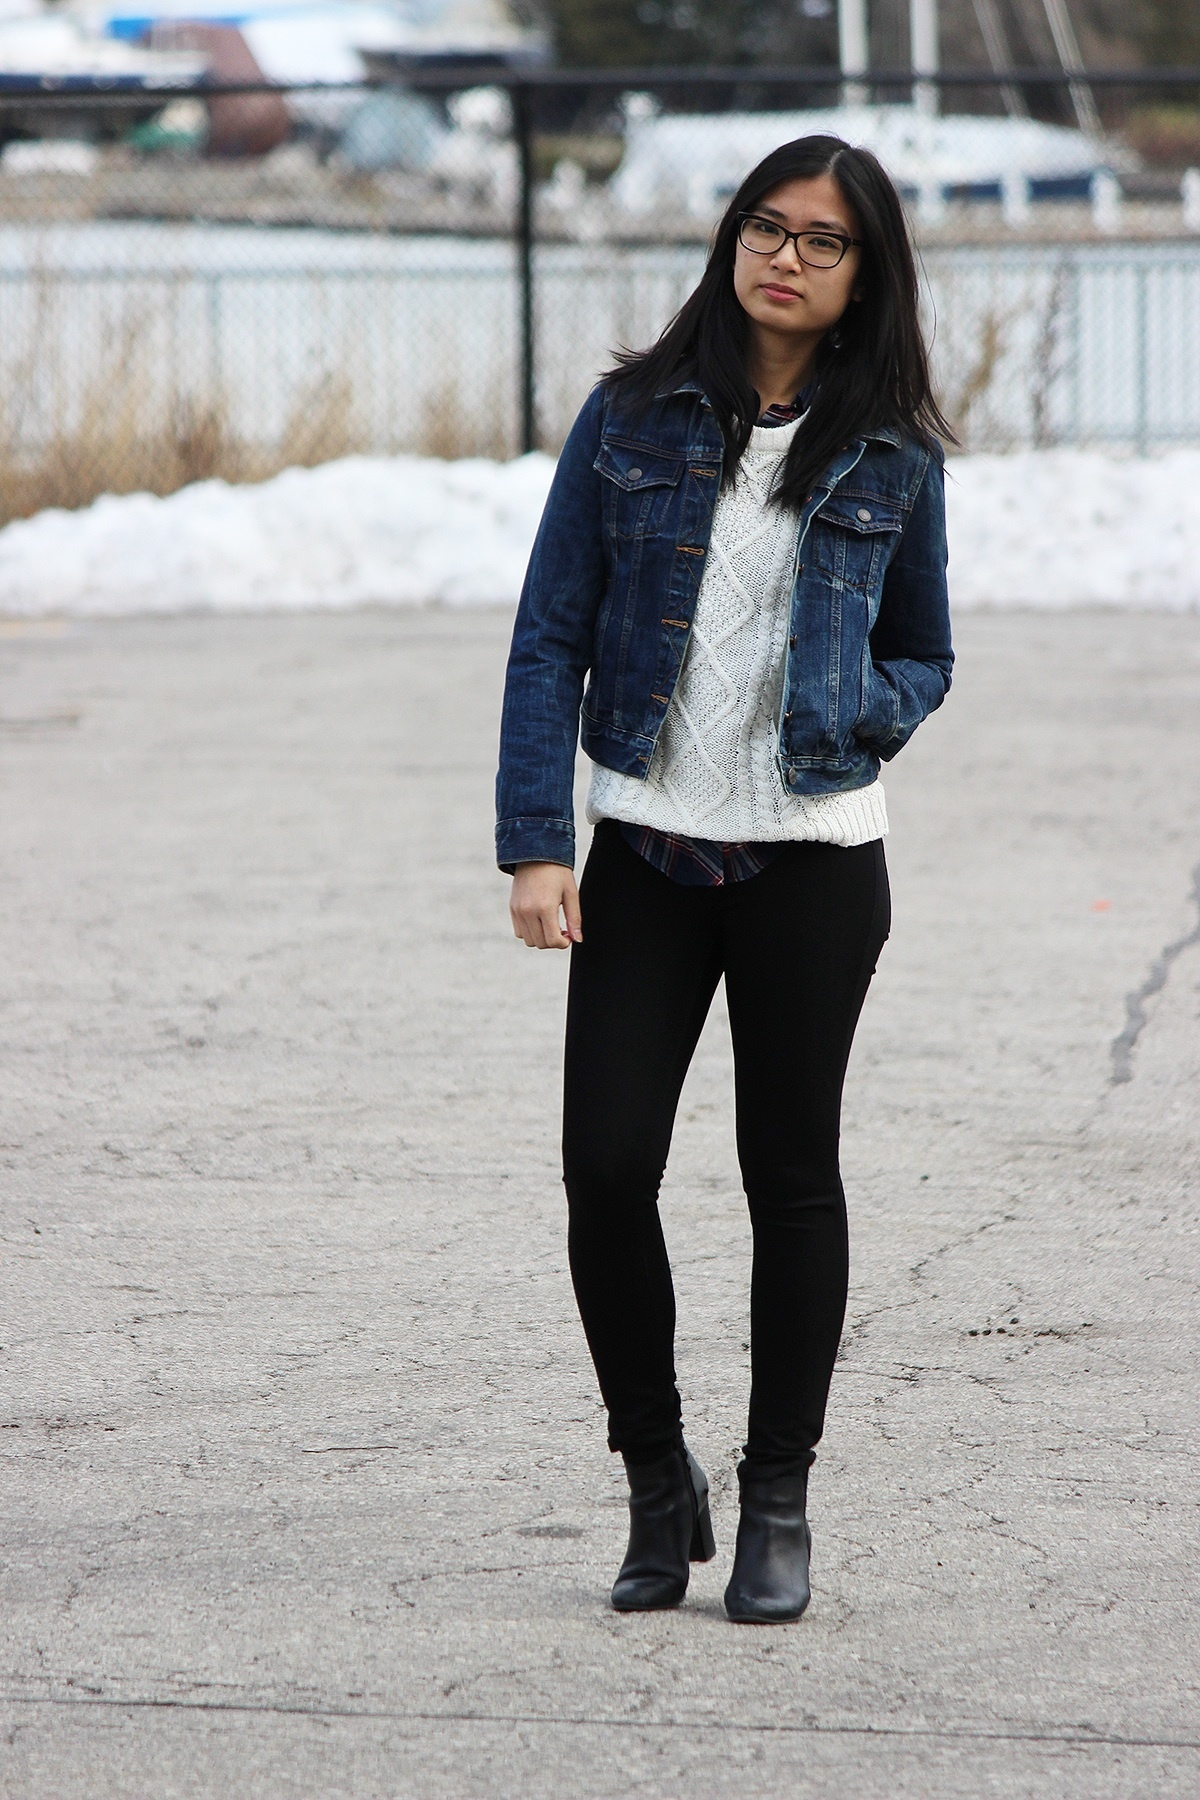 How To Wear a Navy Denim Jacket With Black Skinny Jeans | Women's ...